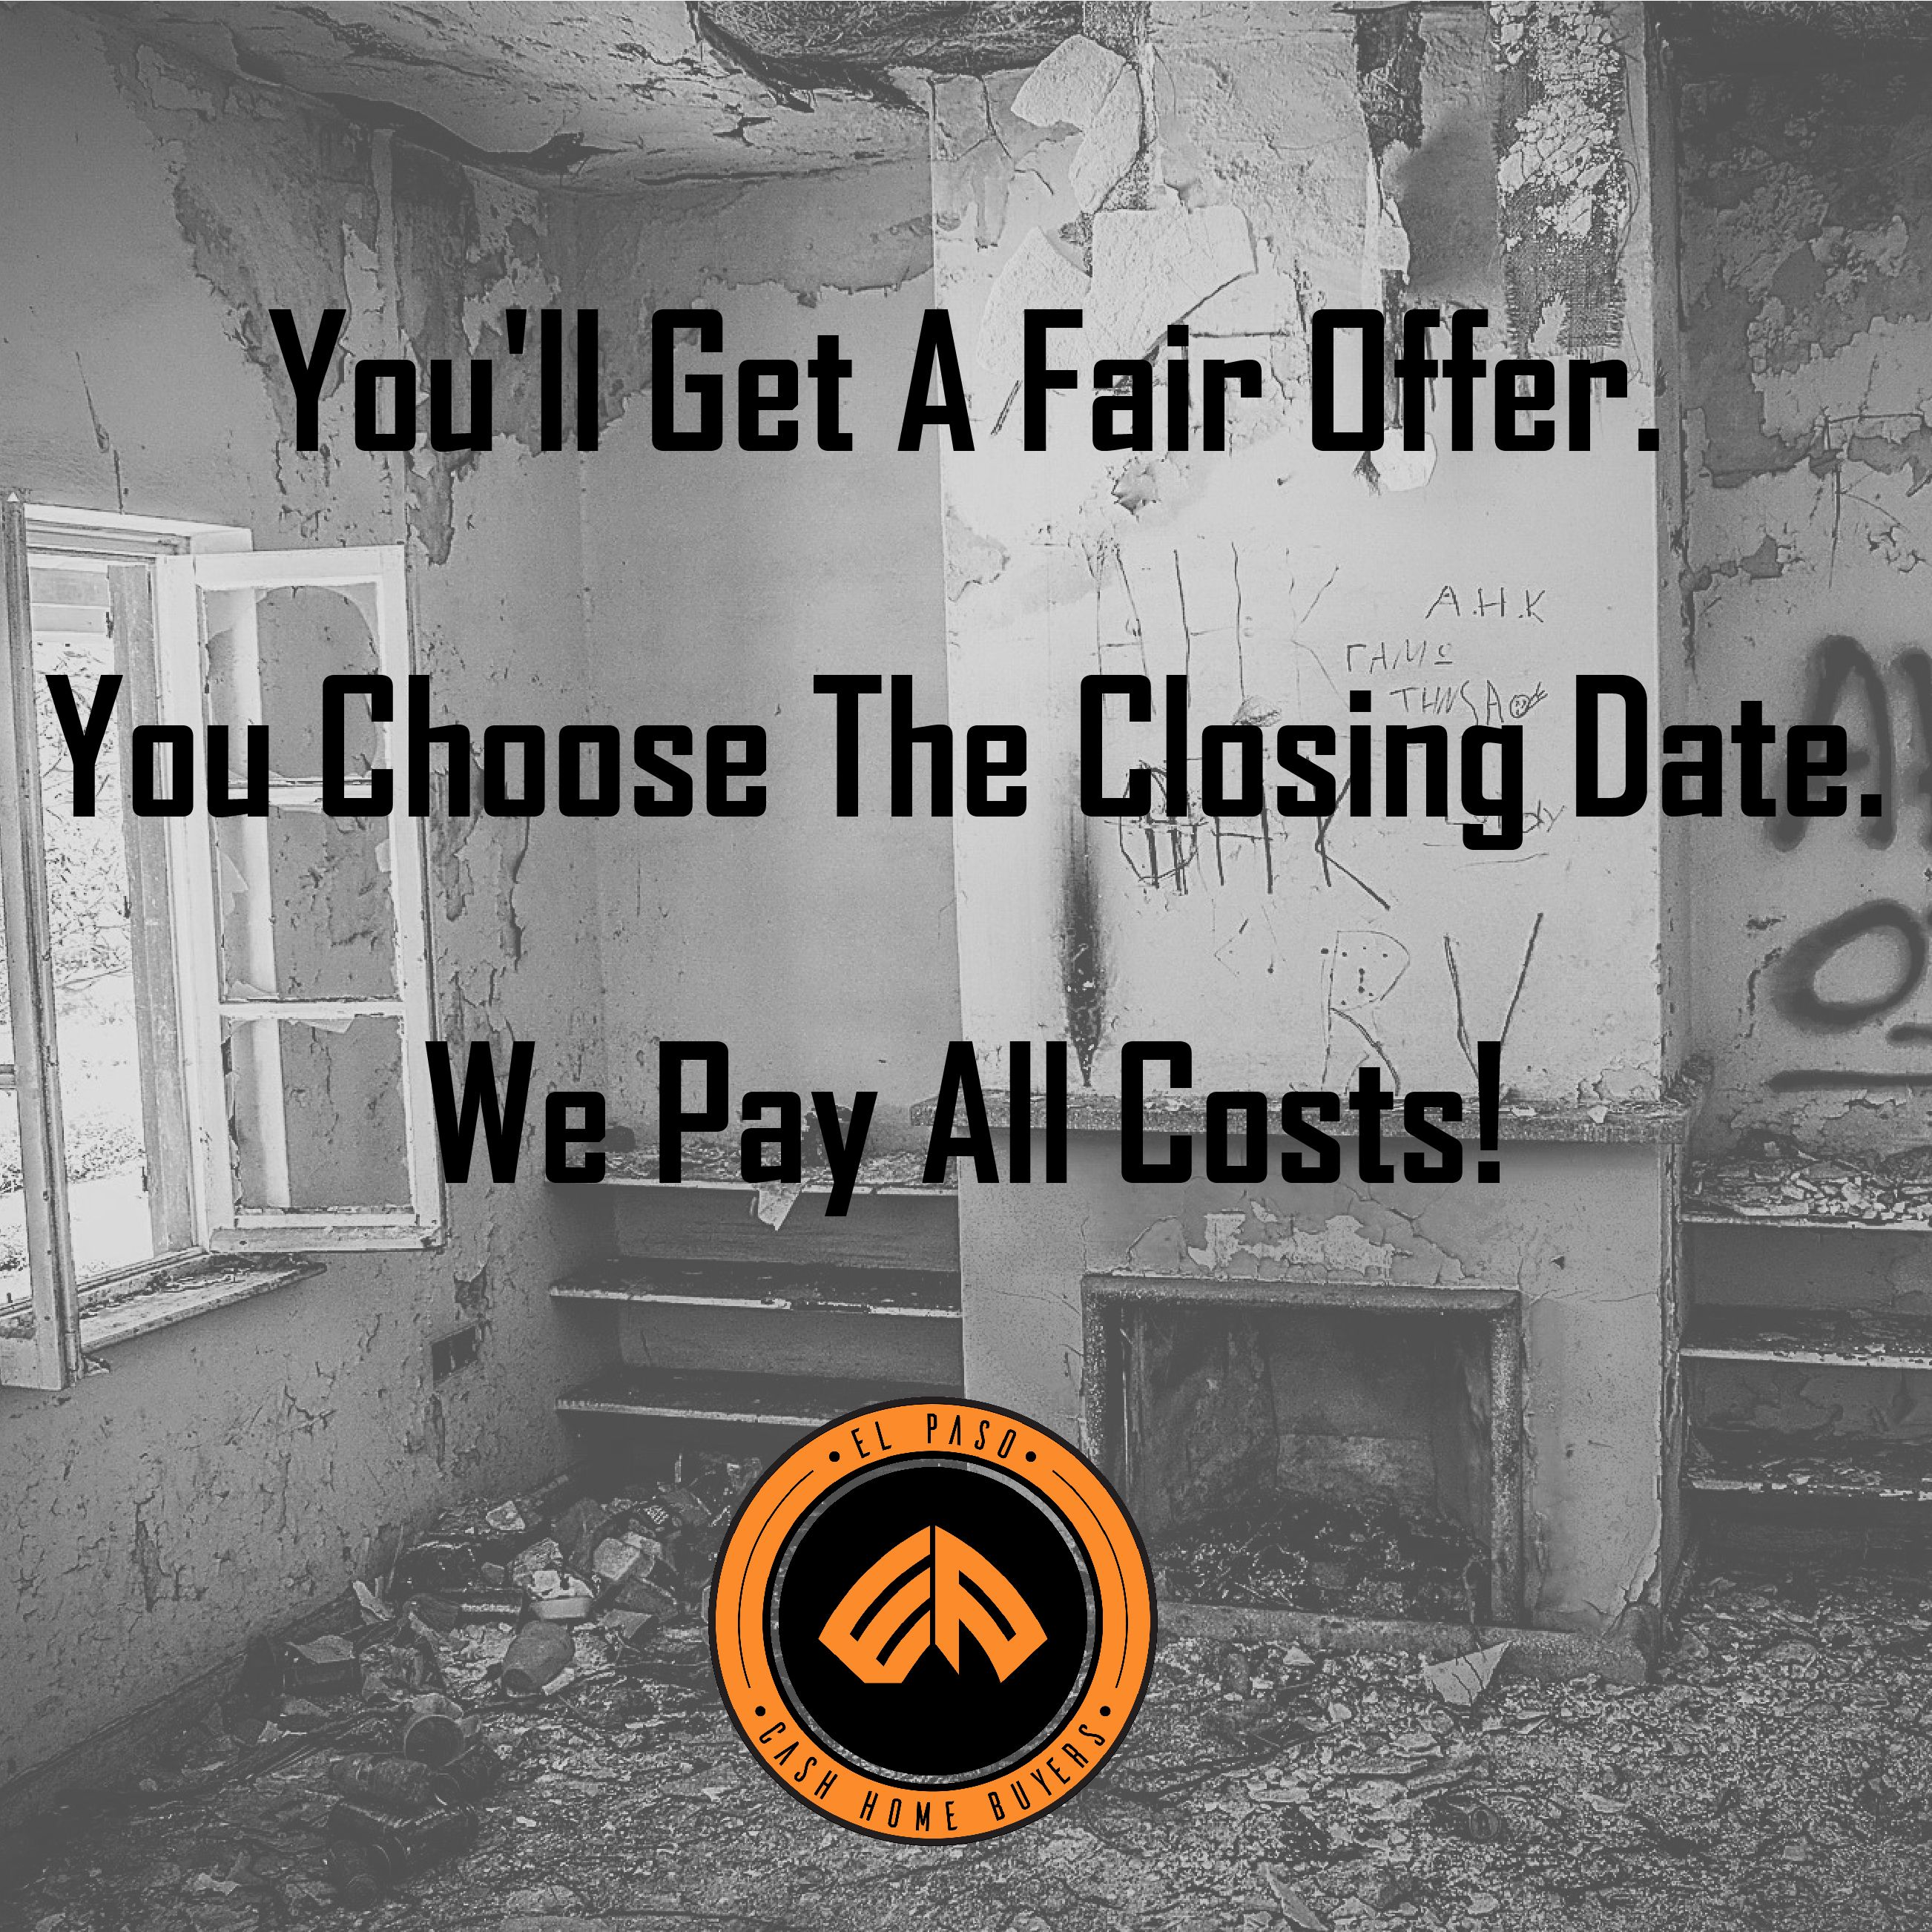 Sell your unwanted property to us! We pay cash! #sellyourhouse ...